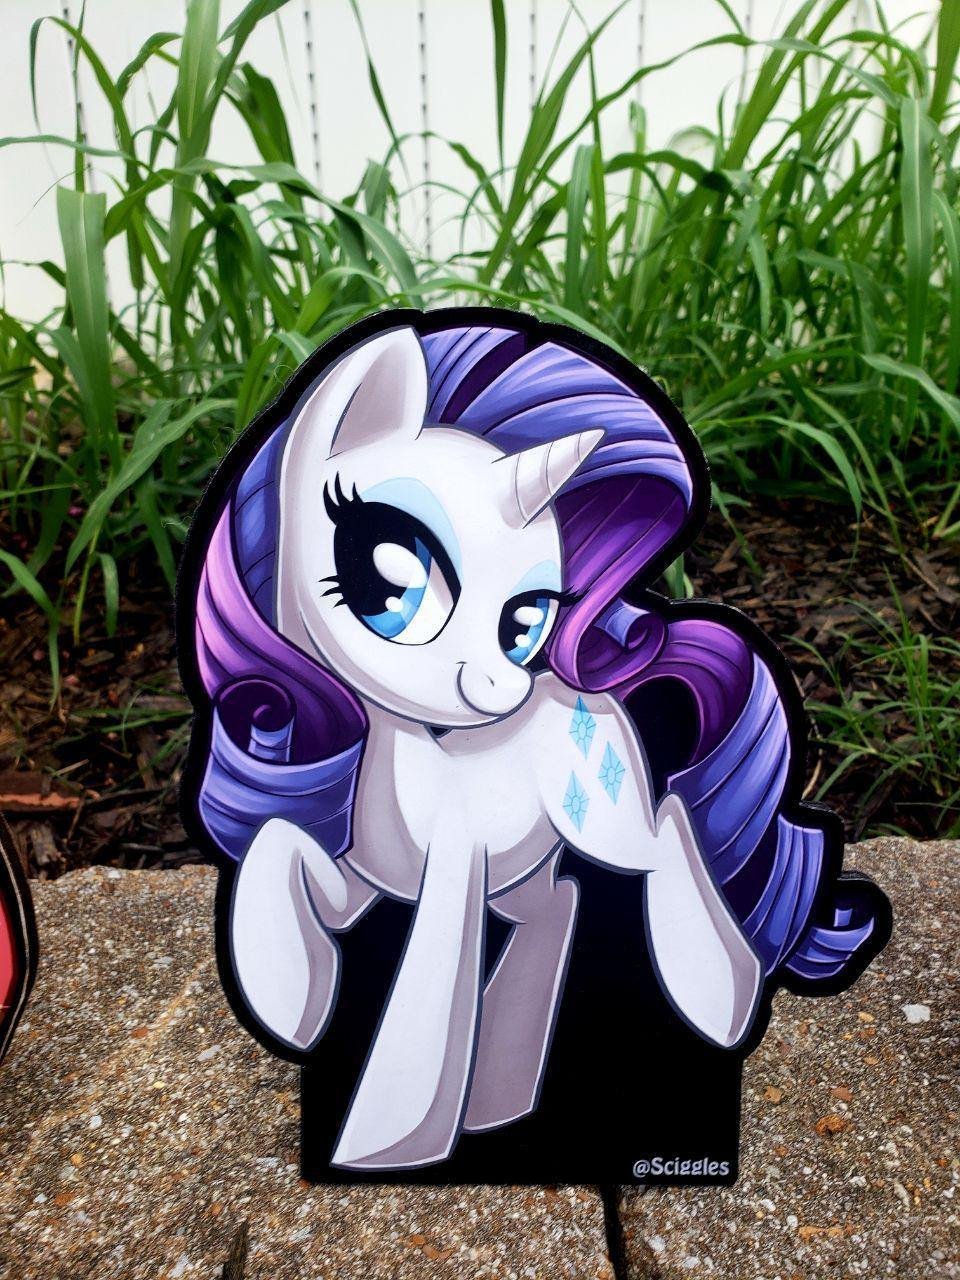 Foam Cutouts - Clearance, Foams, Customizeable, Foams, Gaming, Pony - Sciggles